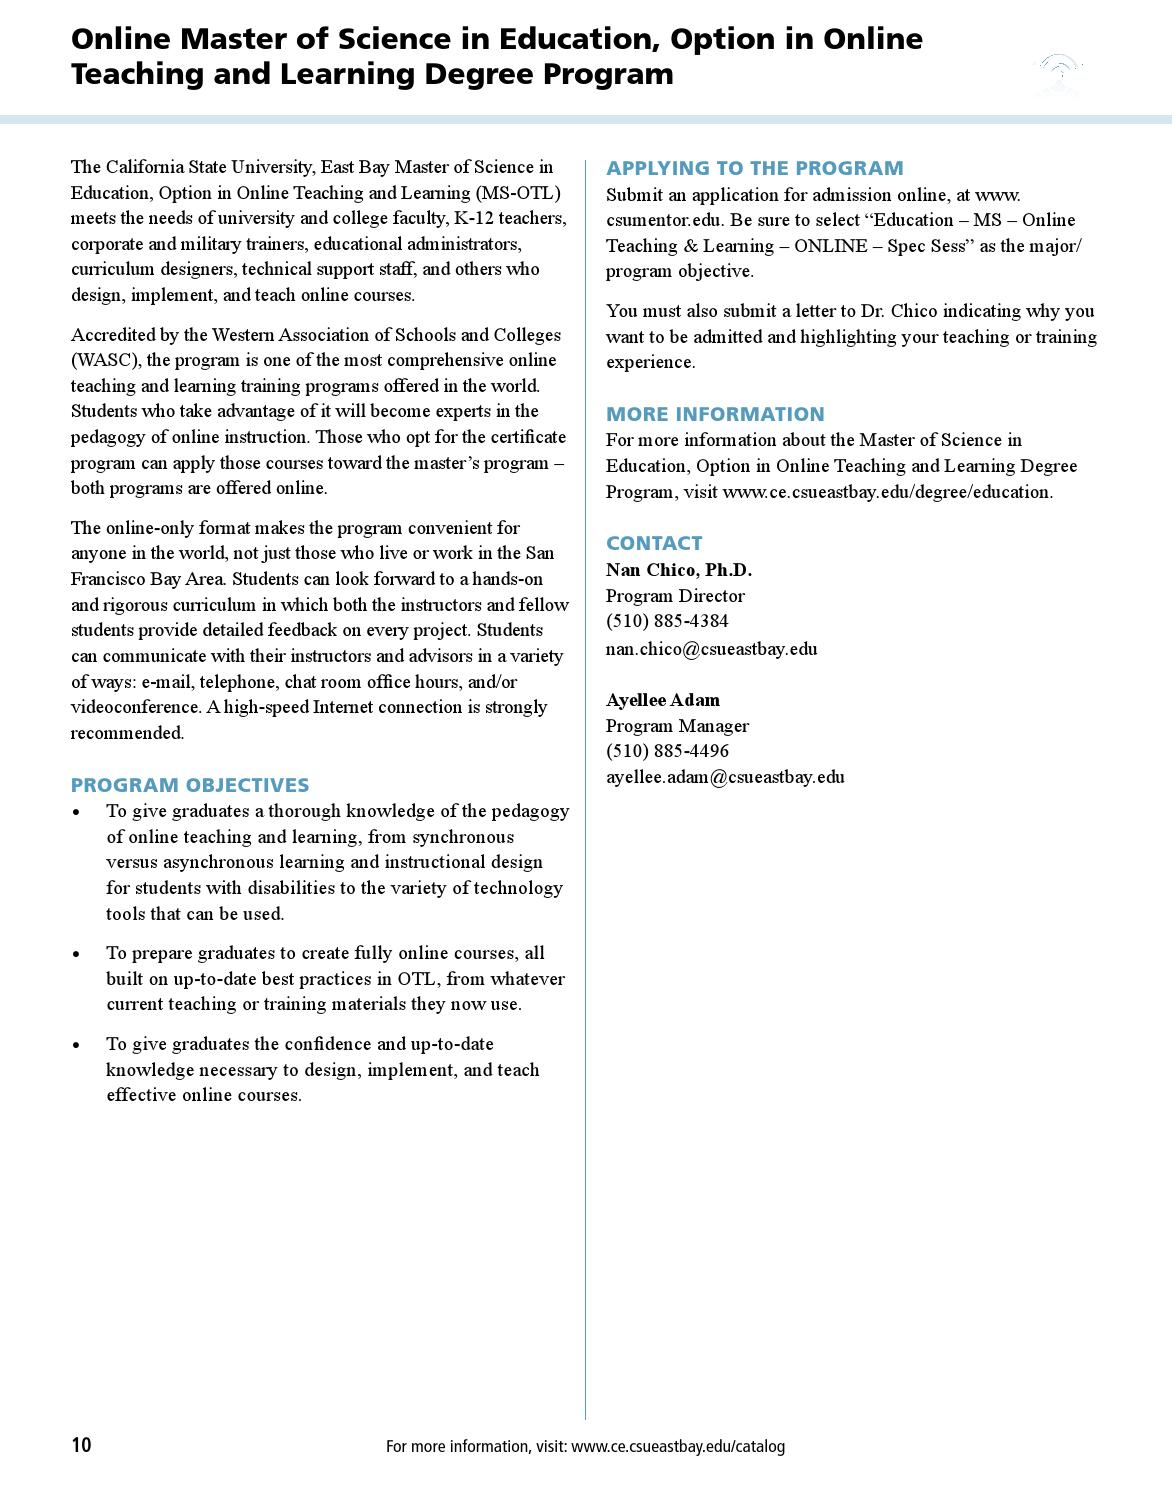 Cal State East Bay Continuing Education Annual Catalog 2012 13 By